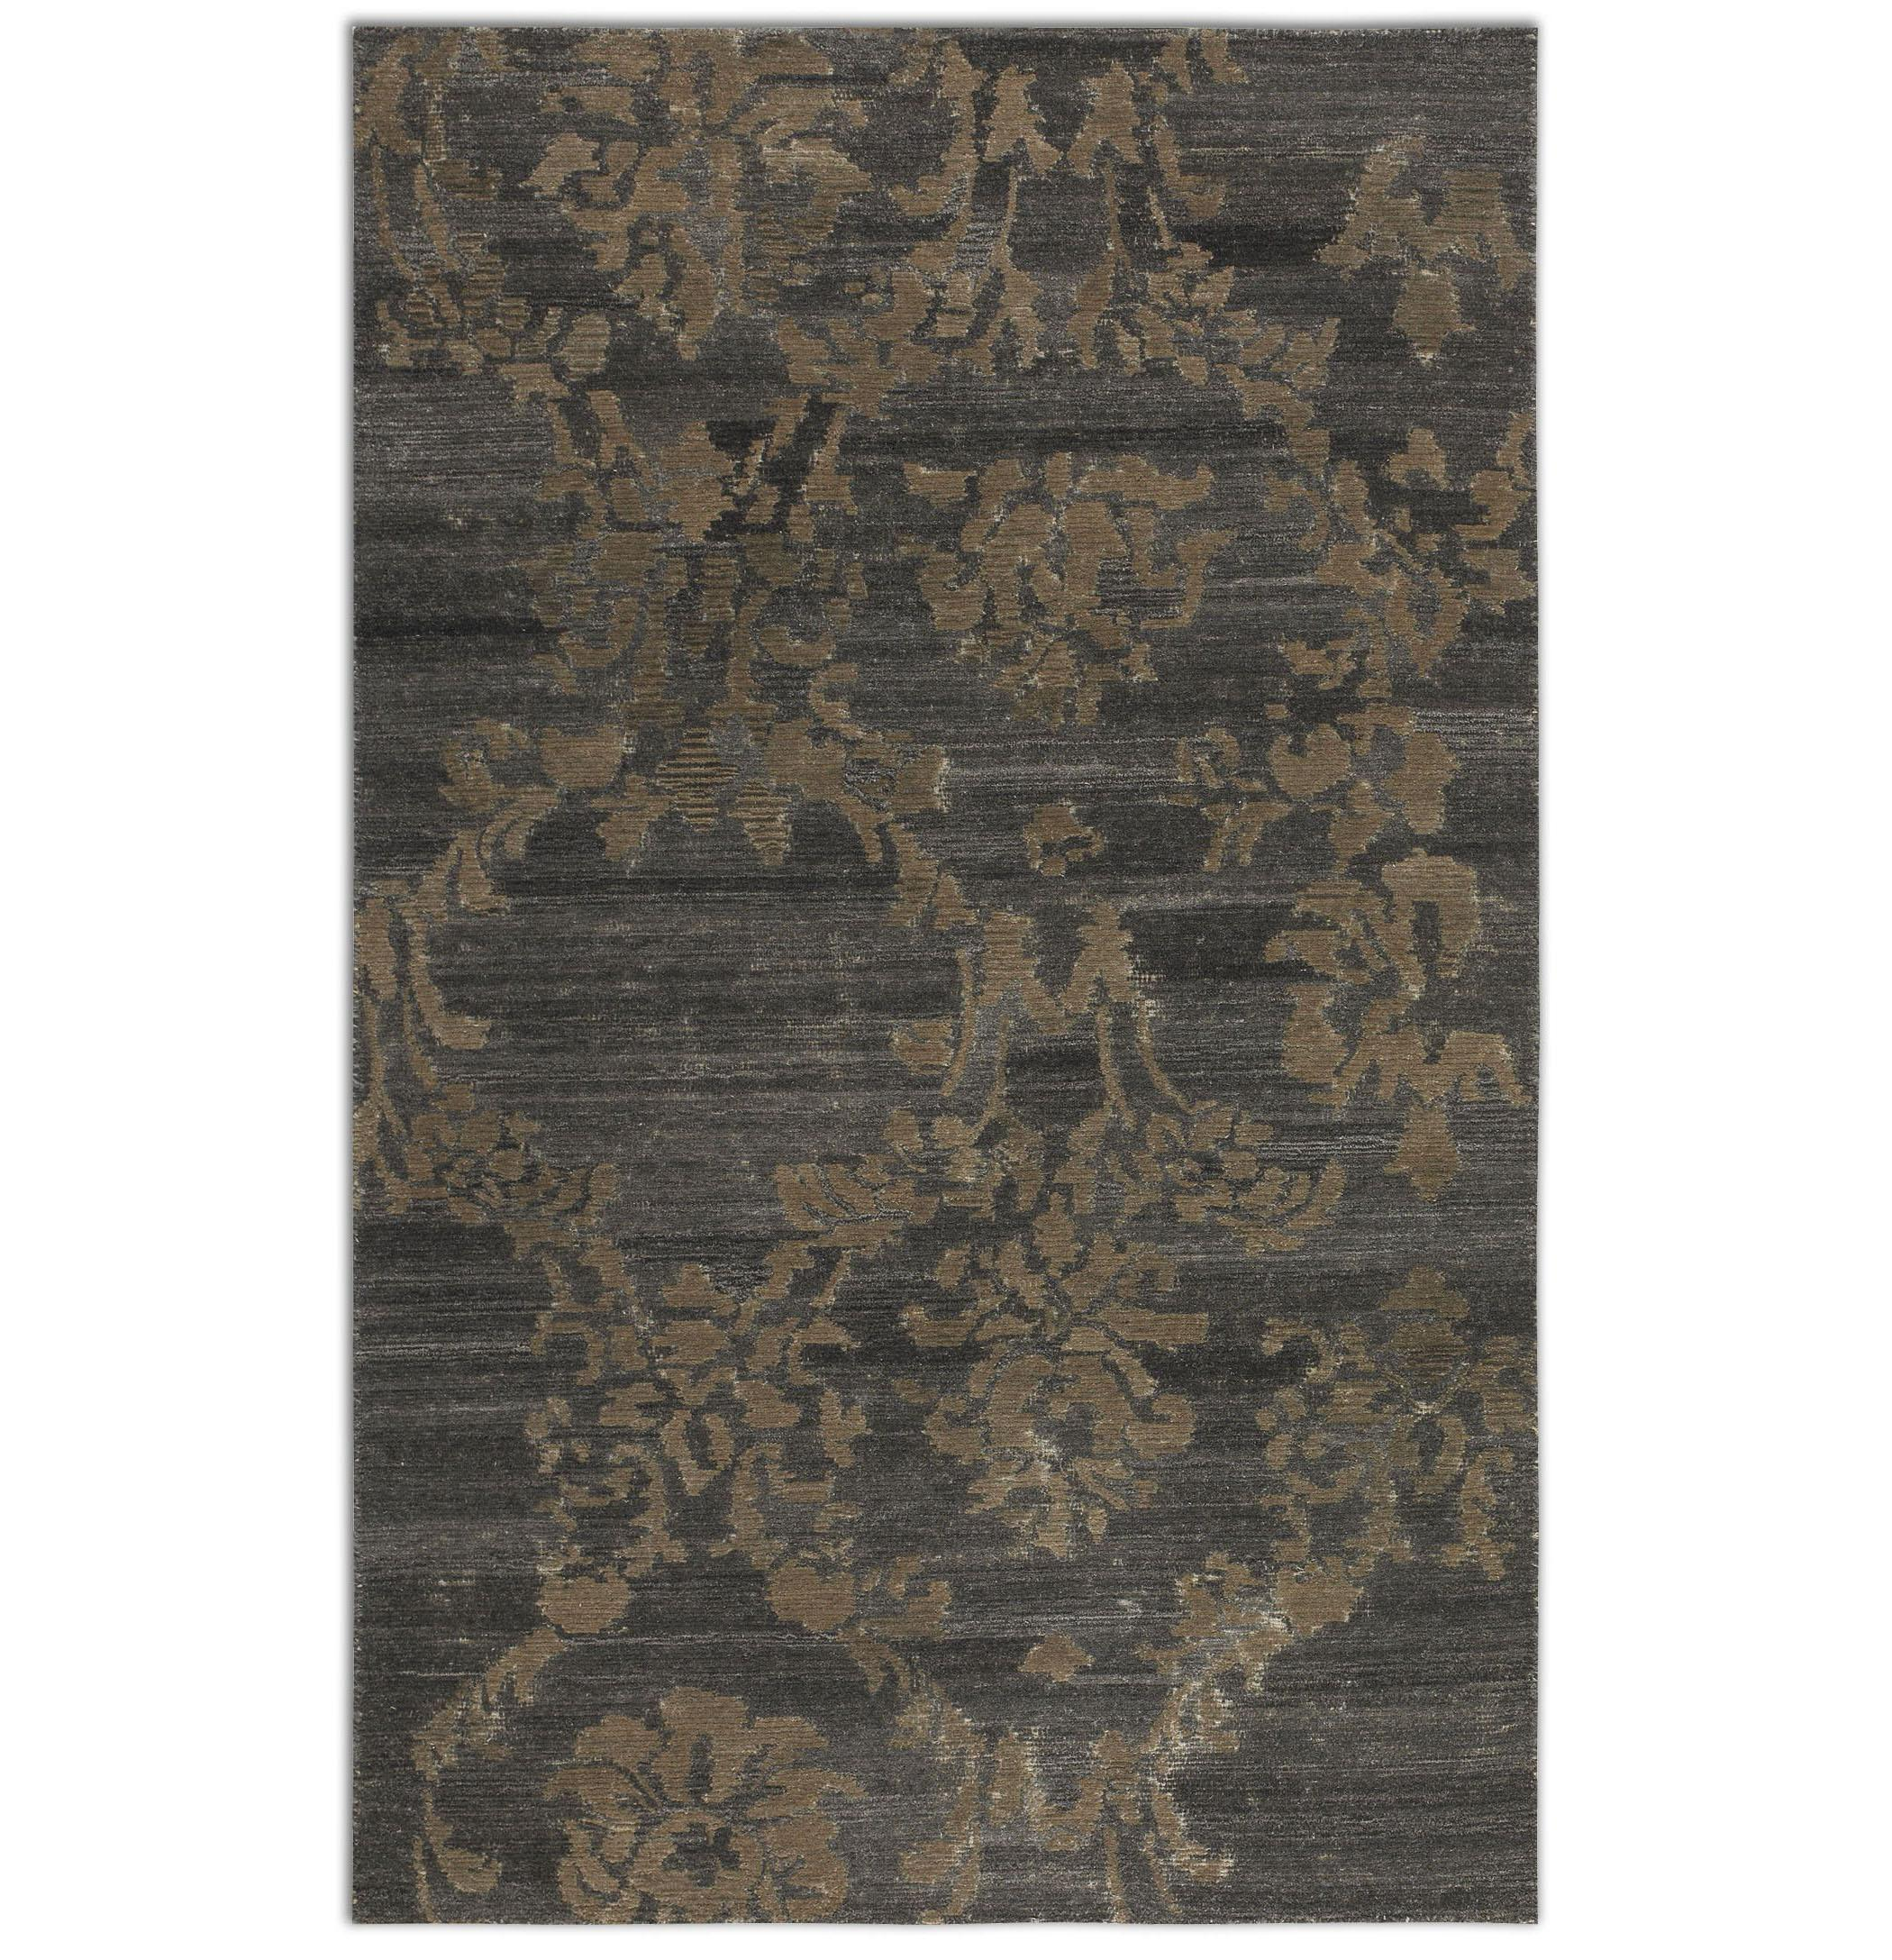 Uttermost Rugs Tavenna 9 X 12 Wool Rug - Item Number: 73046-9